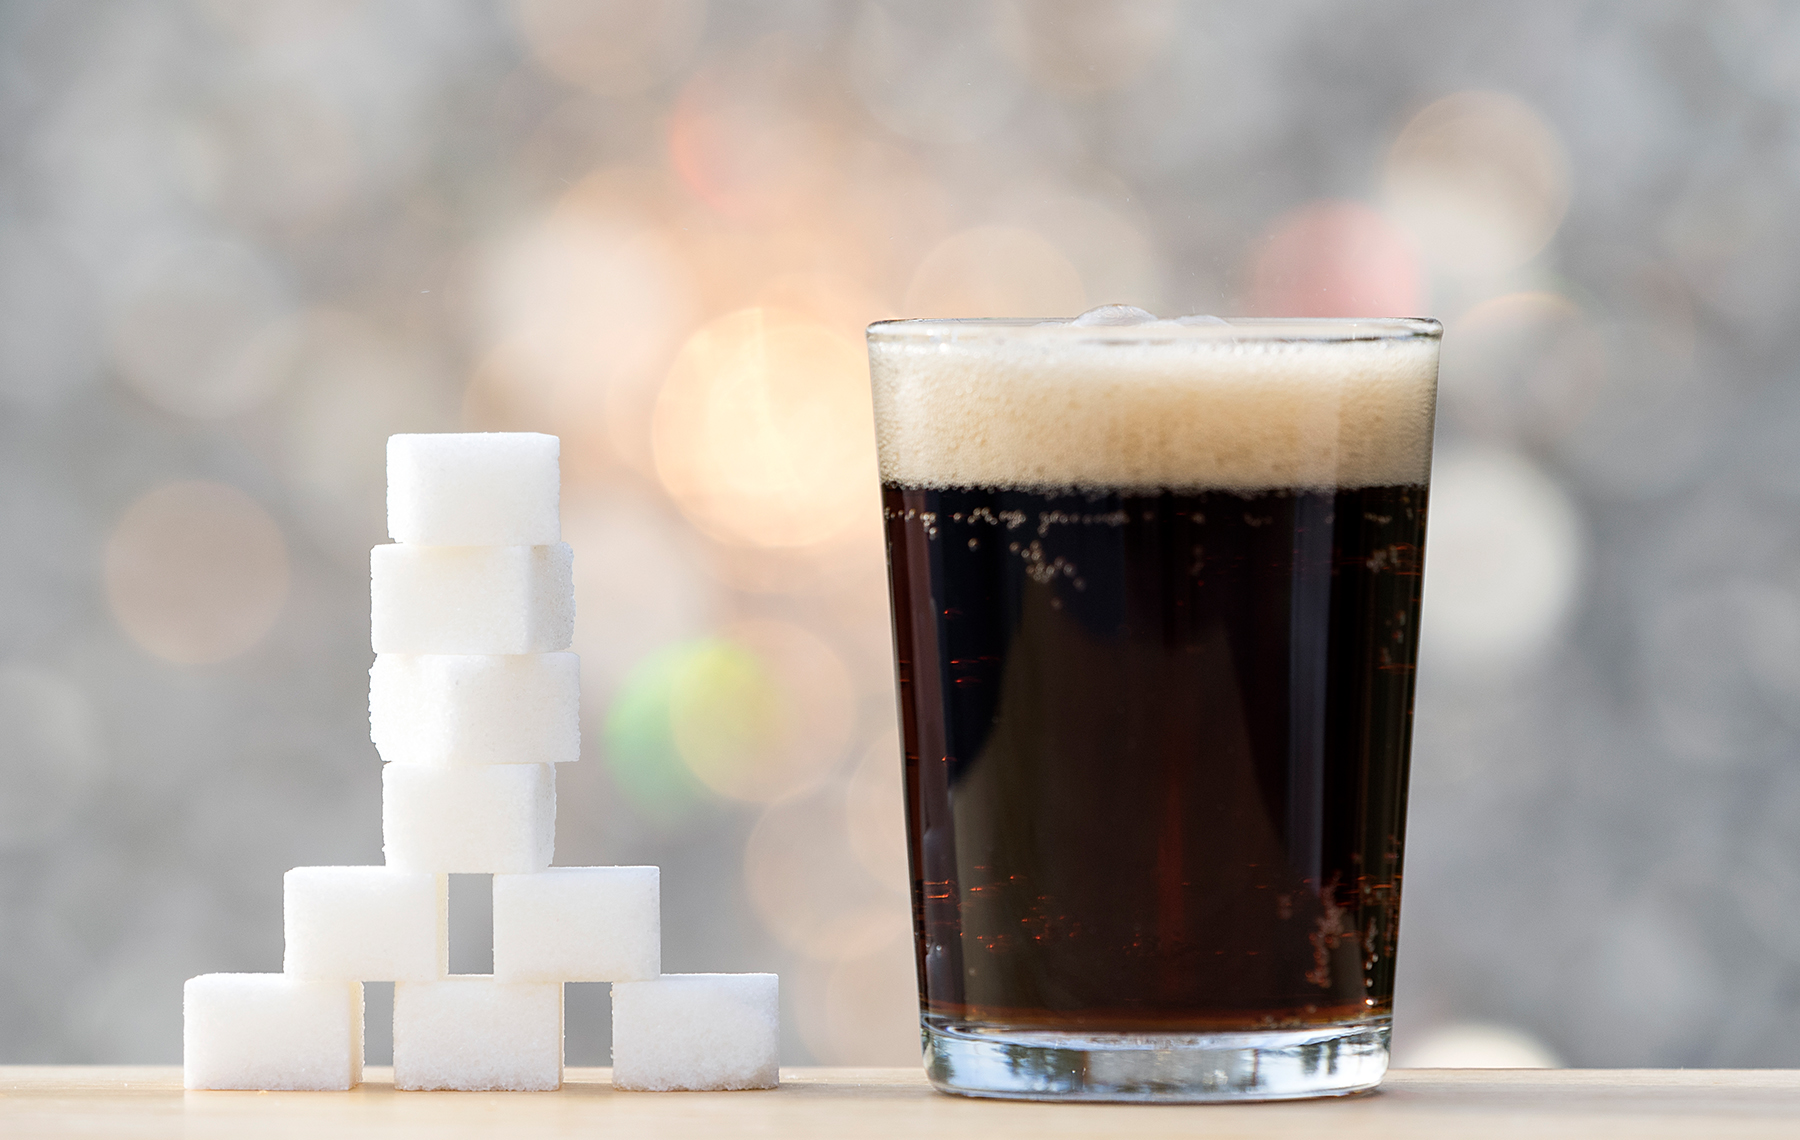 A glass of soda and on the side sugar cubes